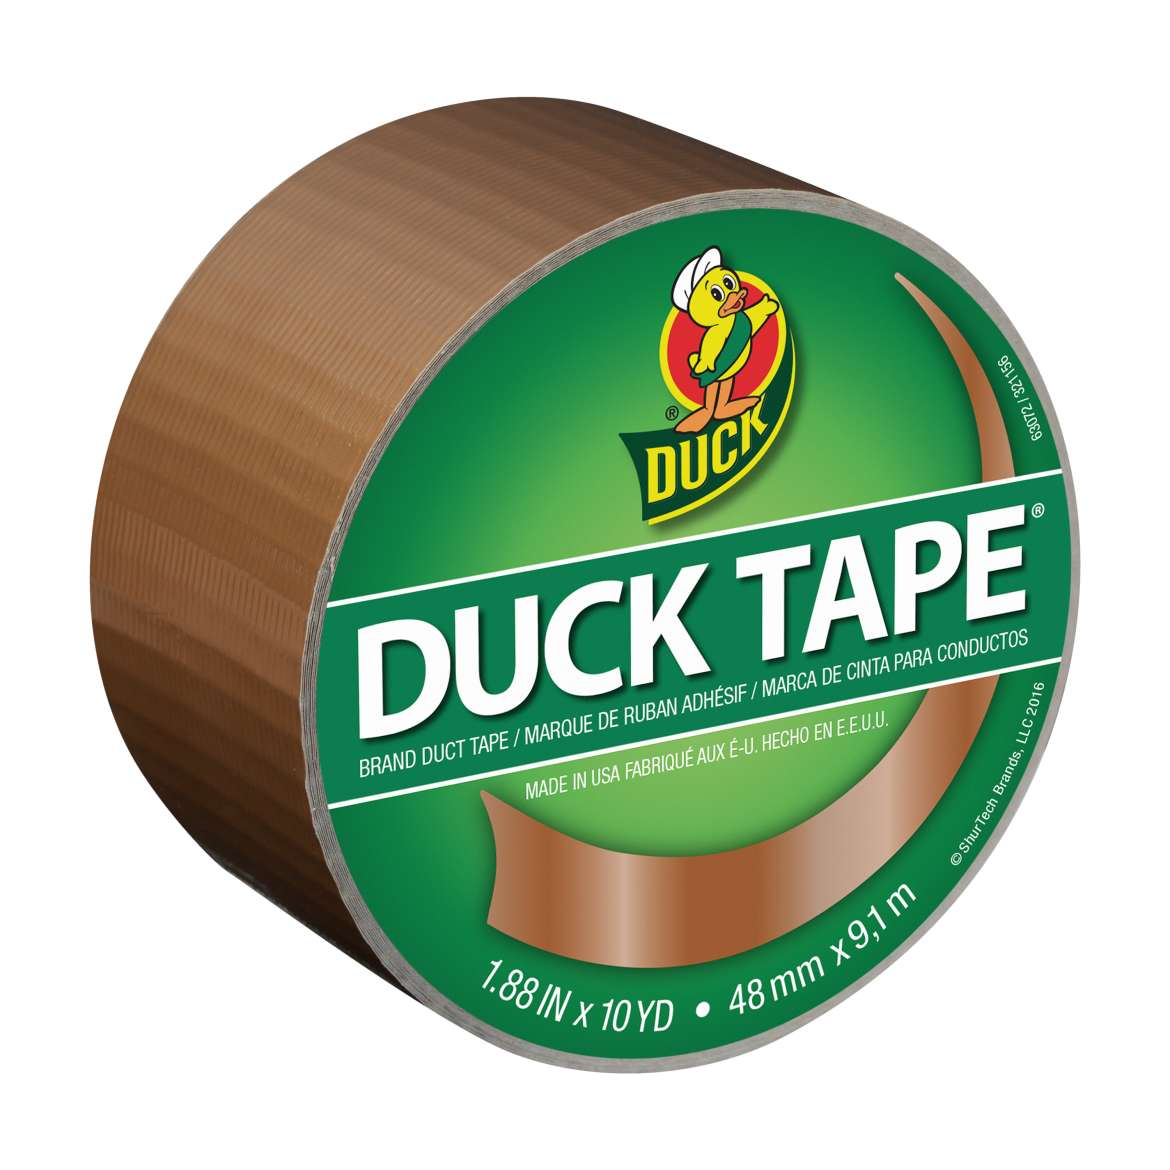 "Color Duck Tape Brand Duct Tape, Bronze, 1.88"" x 10 yd"